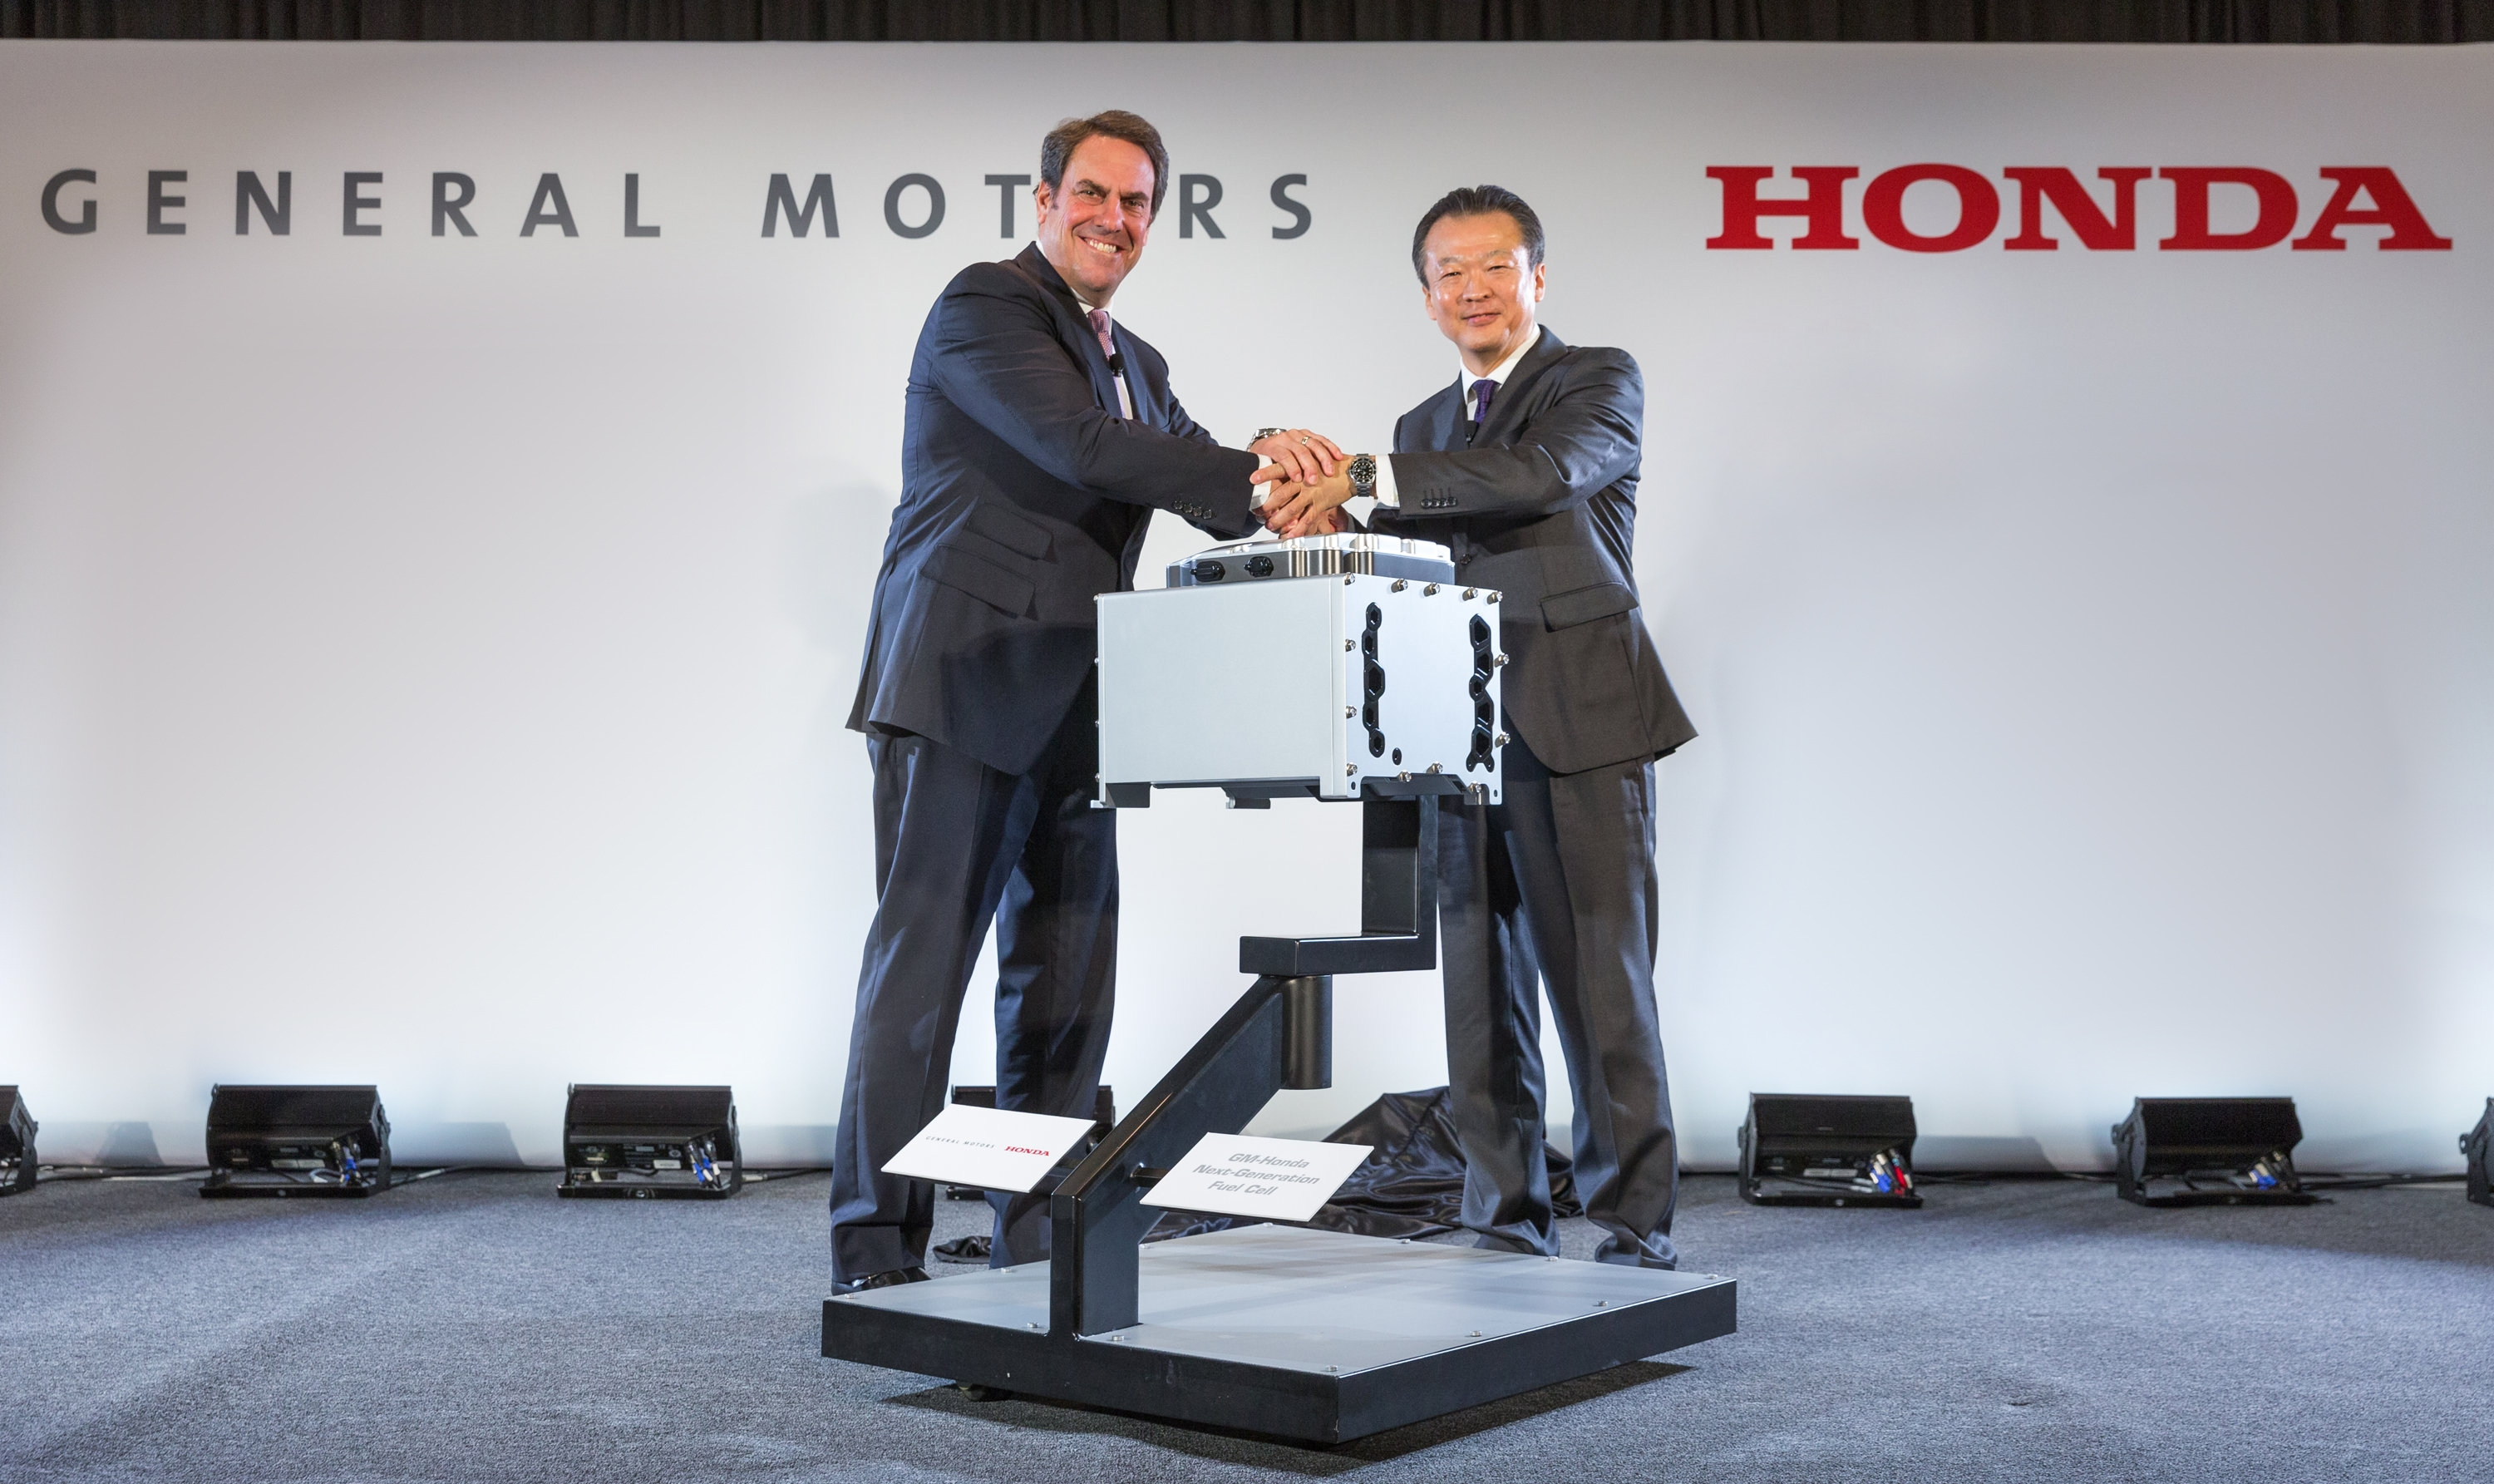 Gm And Honda To Elish Industry First Joint Fuel Cell System Manufacturing Operation In Michigan